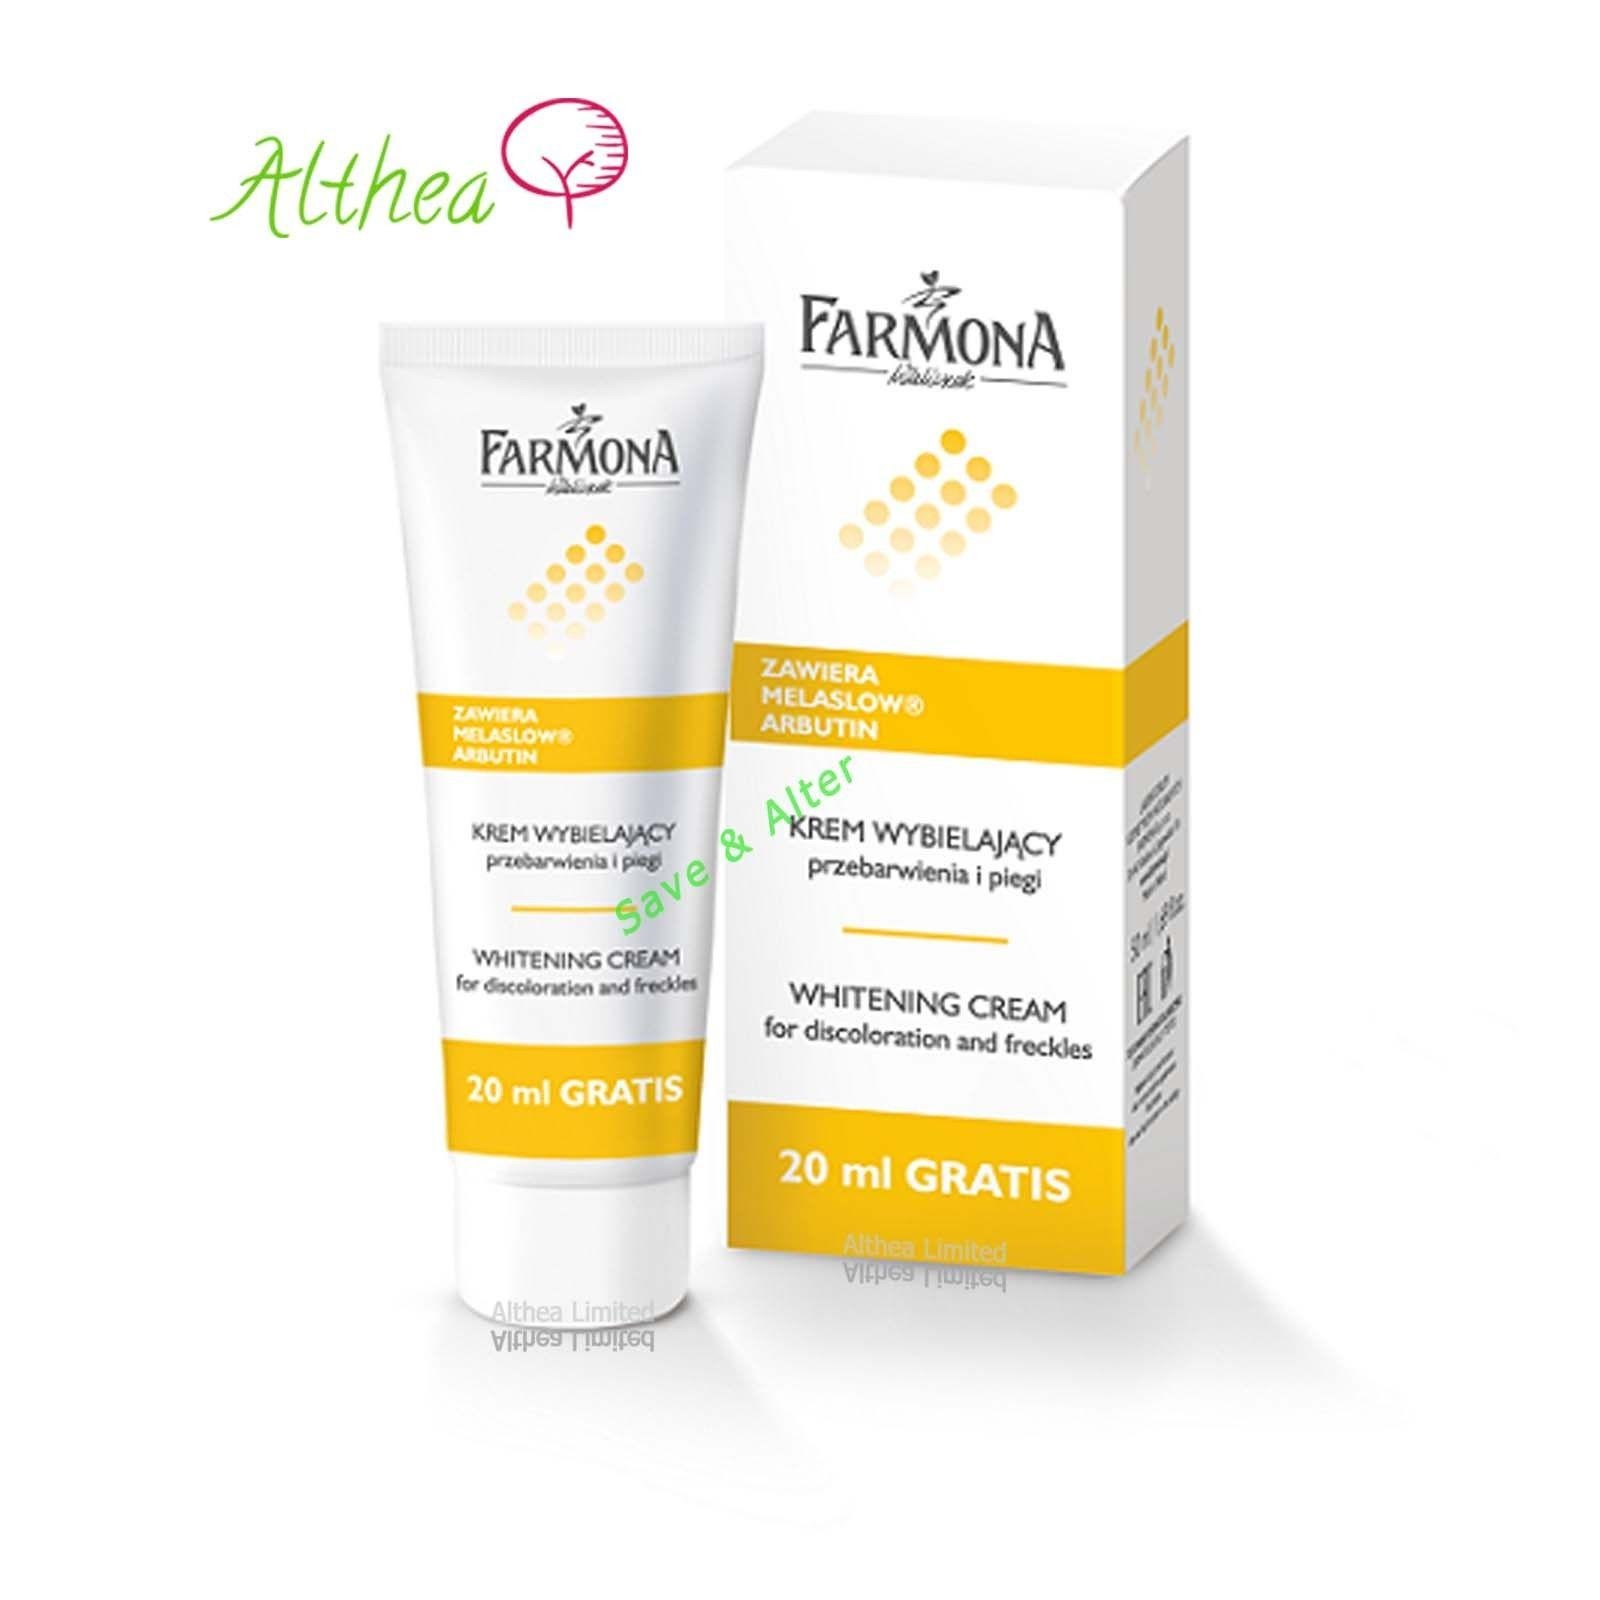 Farmona Whitening Cream for Discoloration and Freckles 50ml